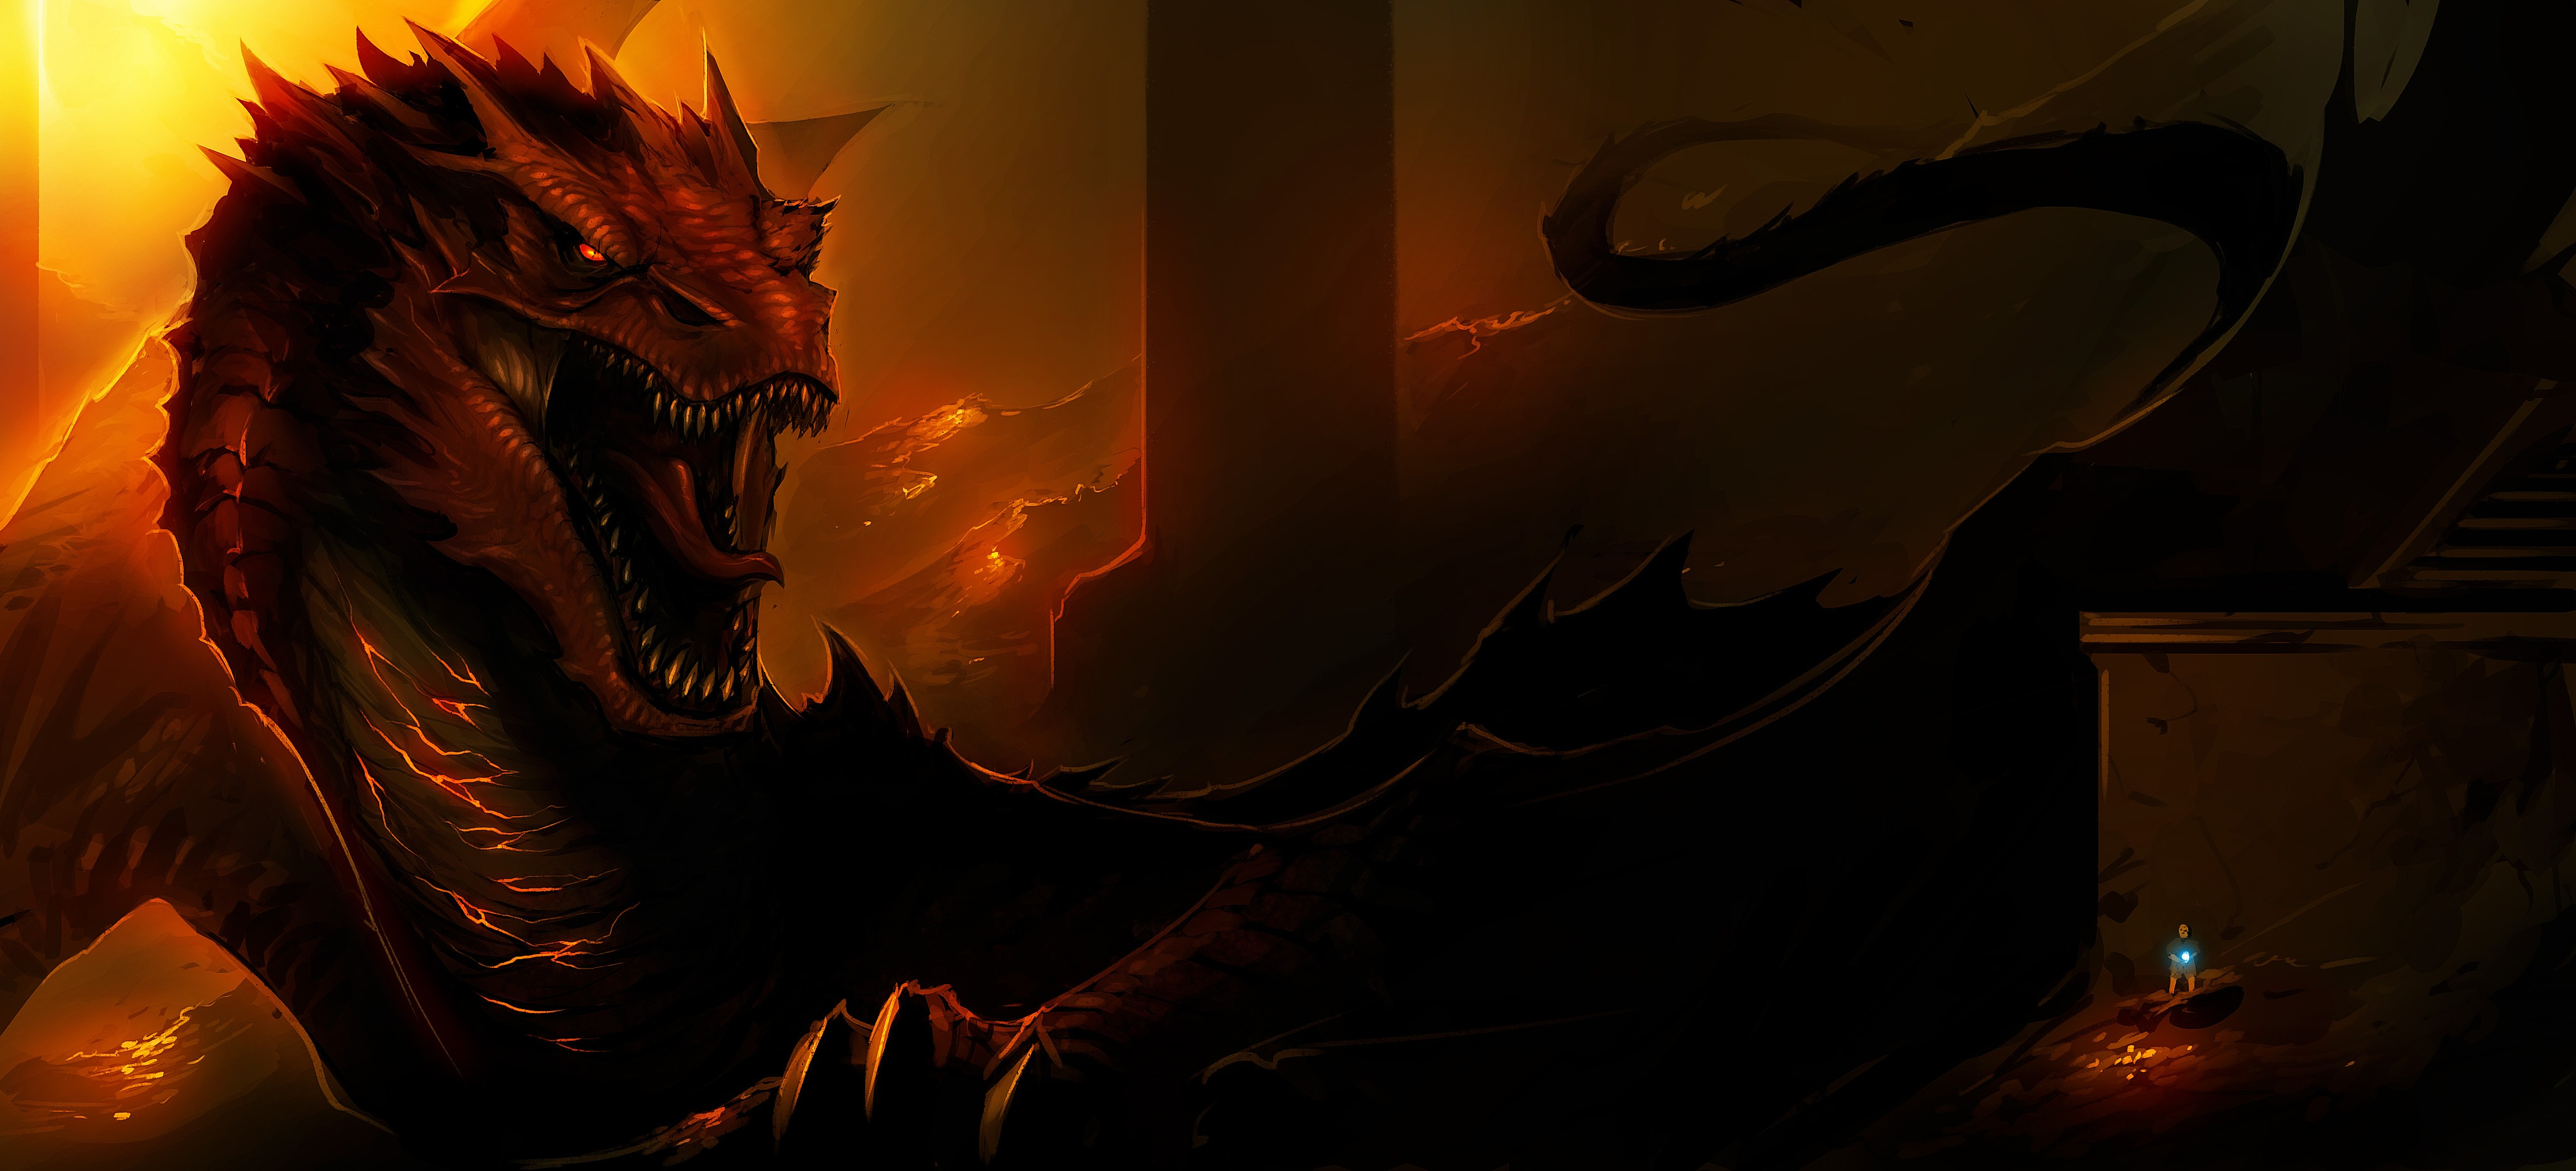 Wallpaper smaug lord of the rings 4109x1868